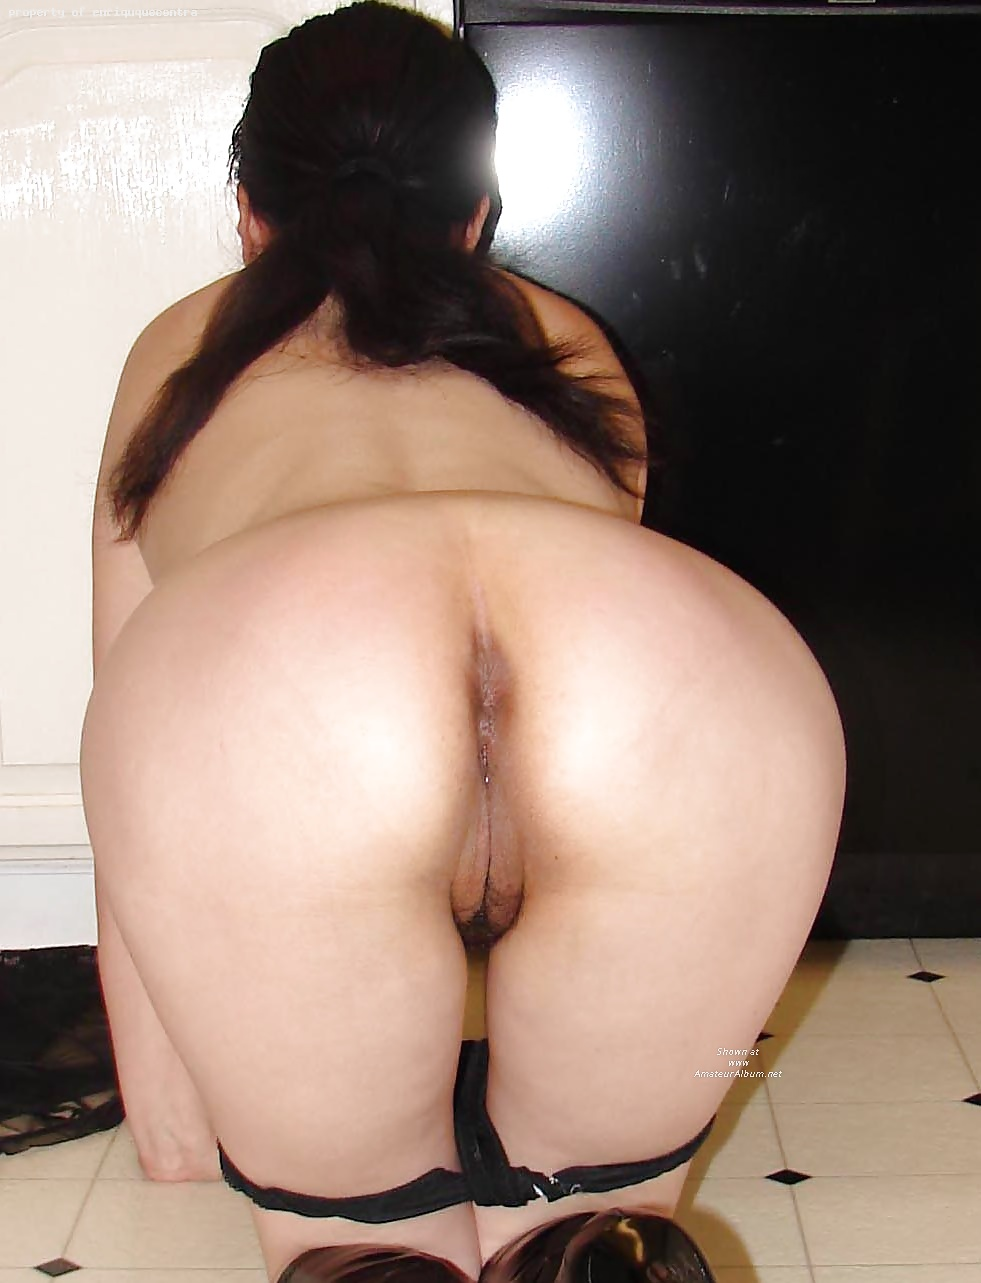 Big dick in small pussy